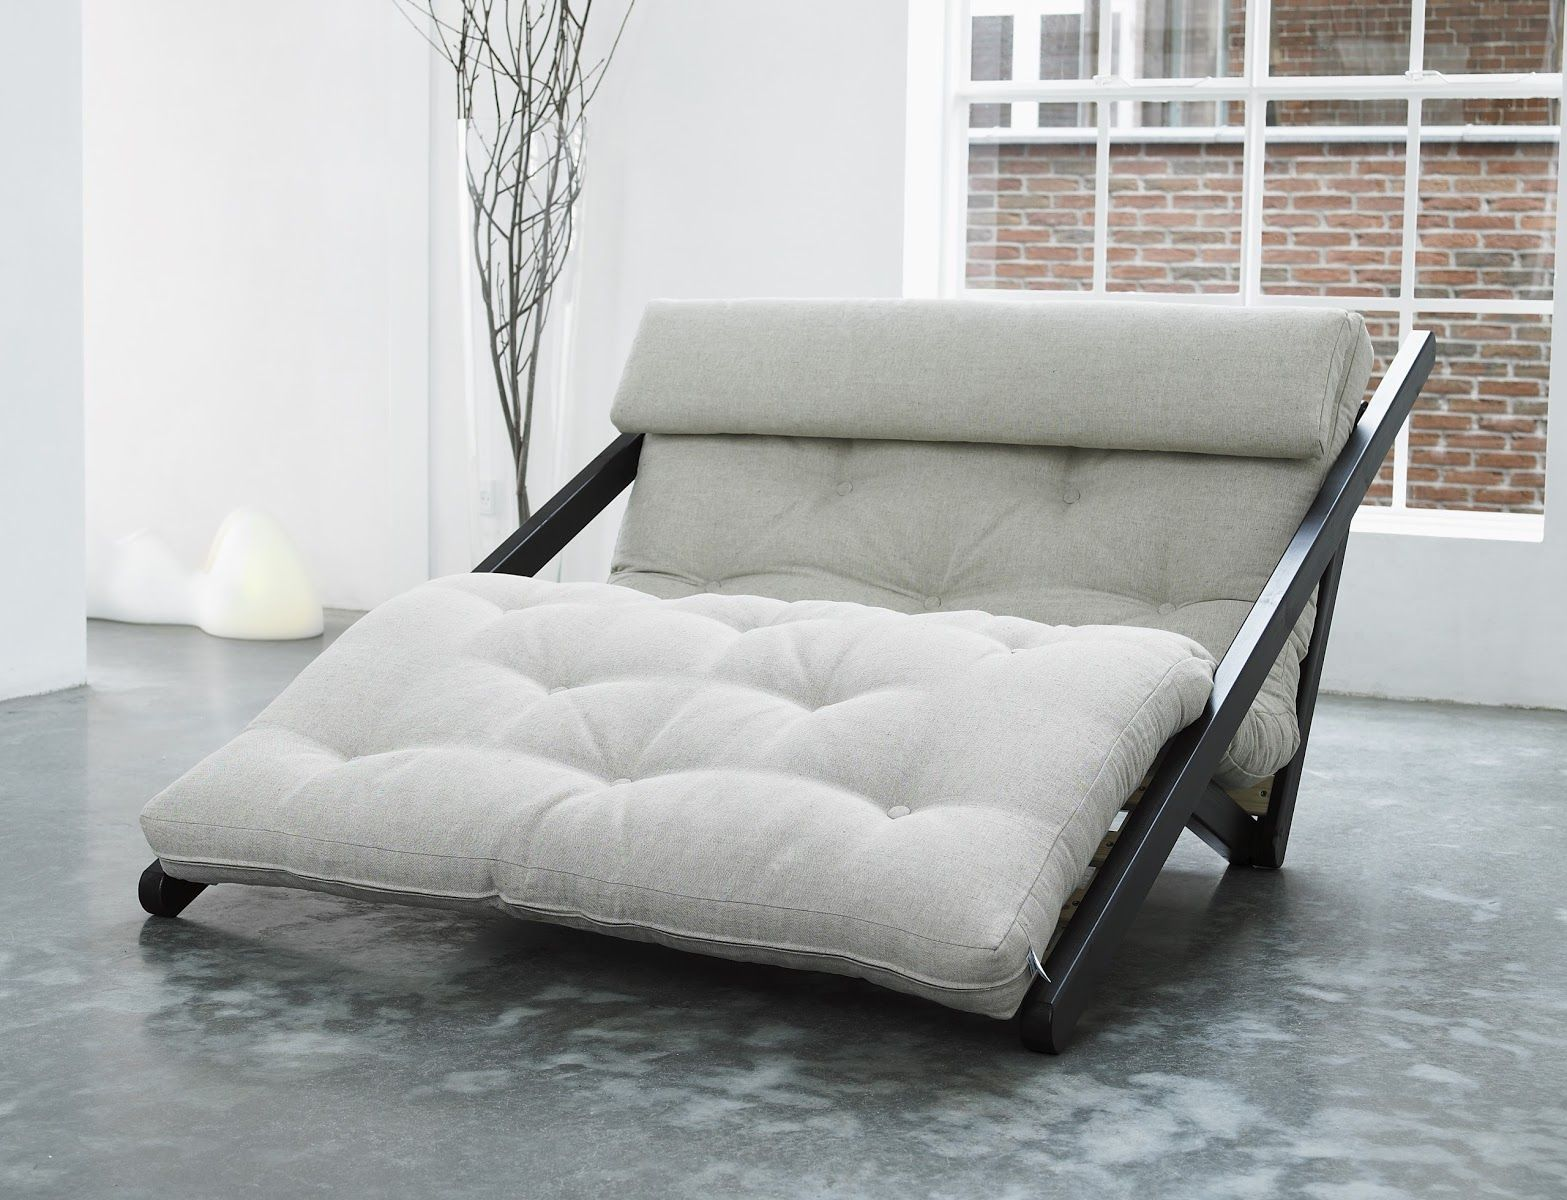 Figo 120x200 Wenge With Flax Mattress And Neck Cushion. By Karup Partners /  Futon Shop